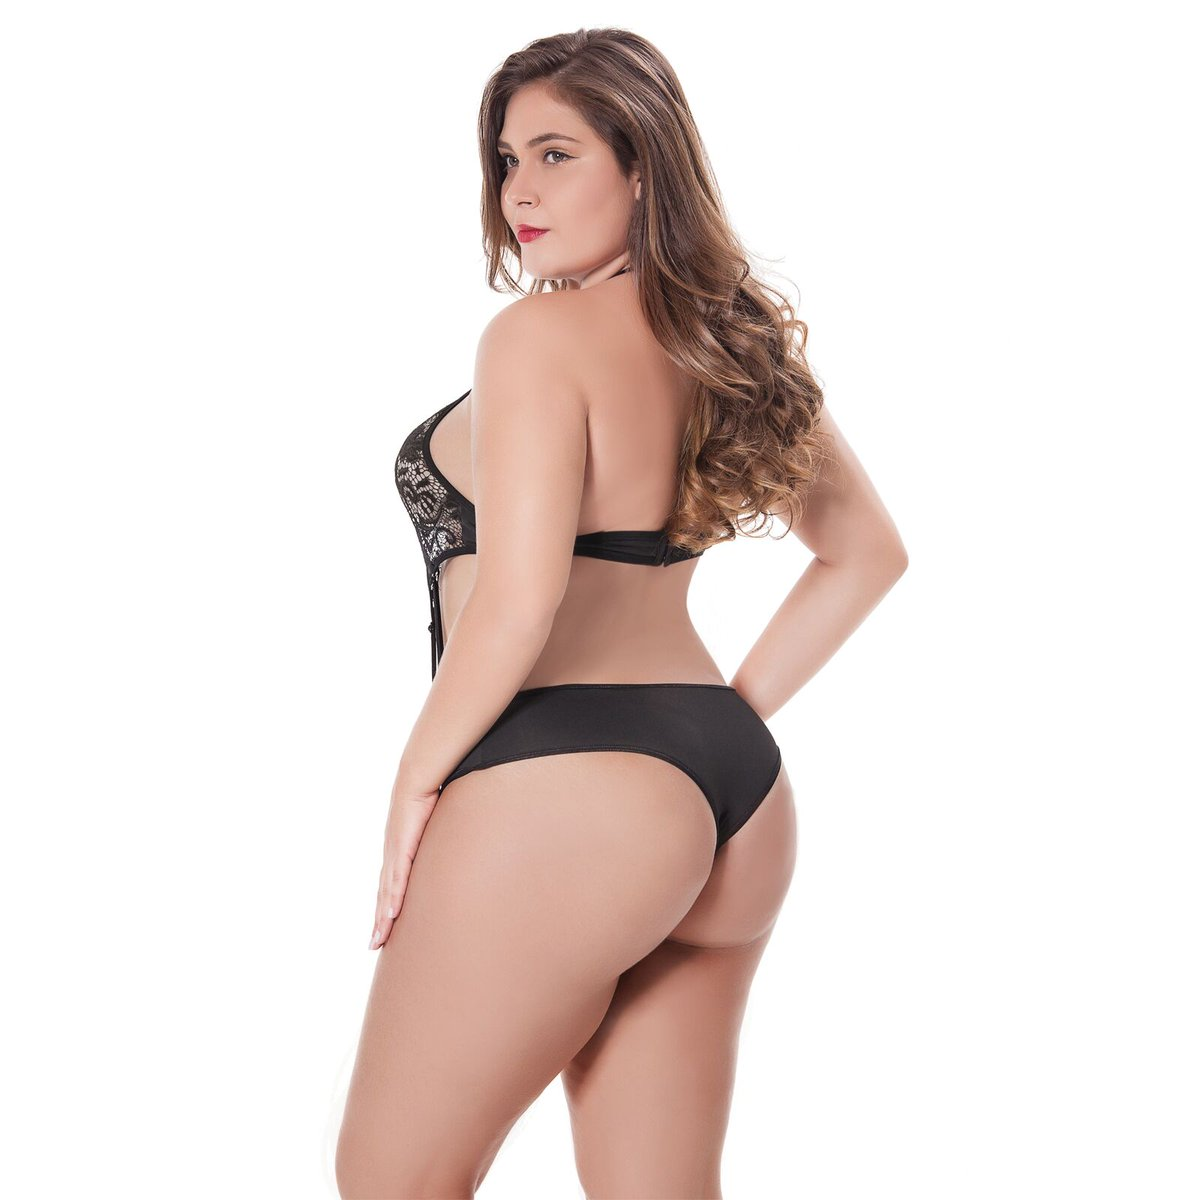 402cde2a51a Moonfate Plus Size Women Teddy Bodysuit High Neck Lace Sheer Mesh One Piece  Babydoll Sexy Lingerie ...